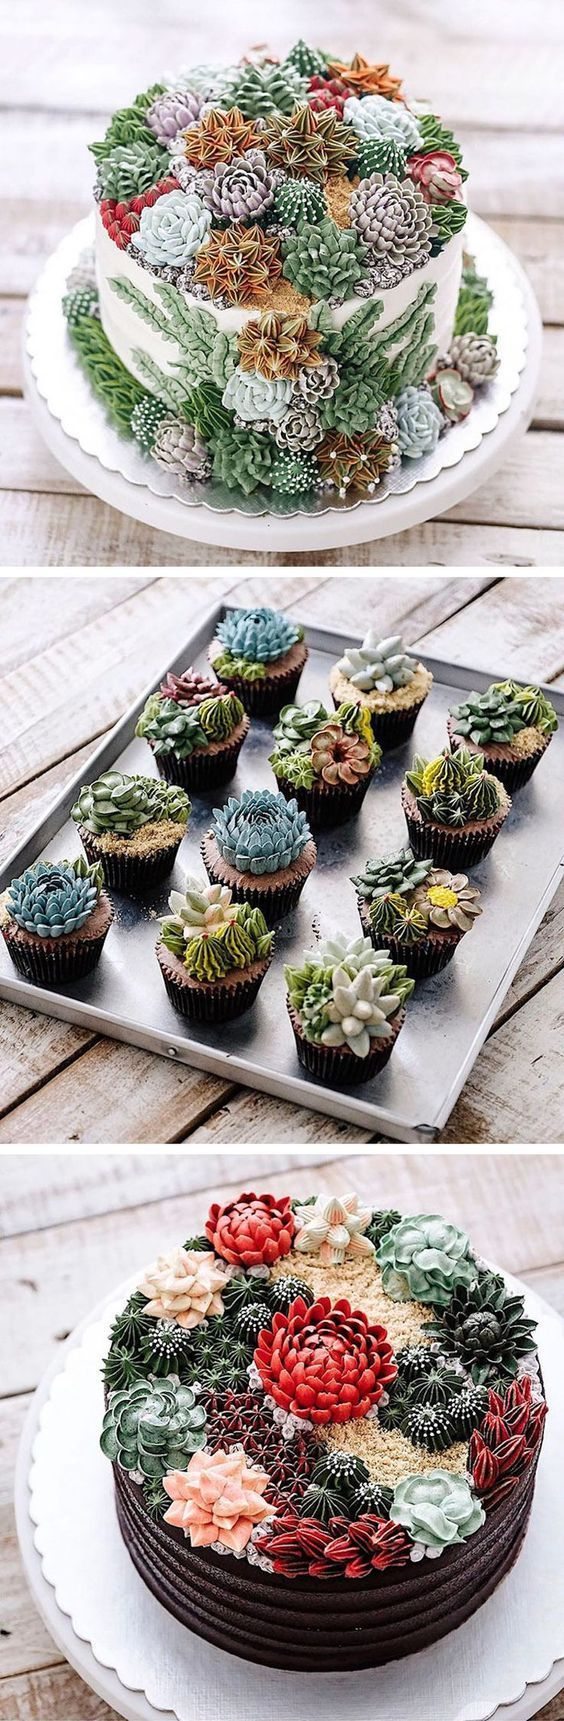 These buttercream succulent cakes and cupcakes are almost too adorable to eat! @craftsy